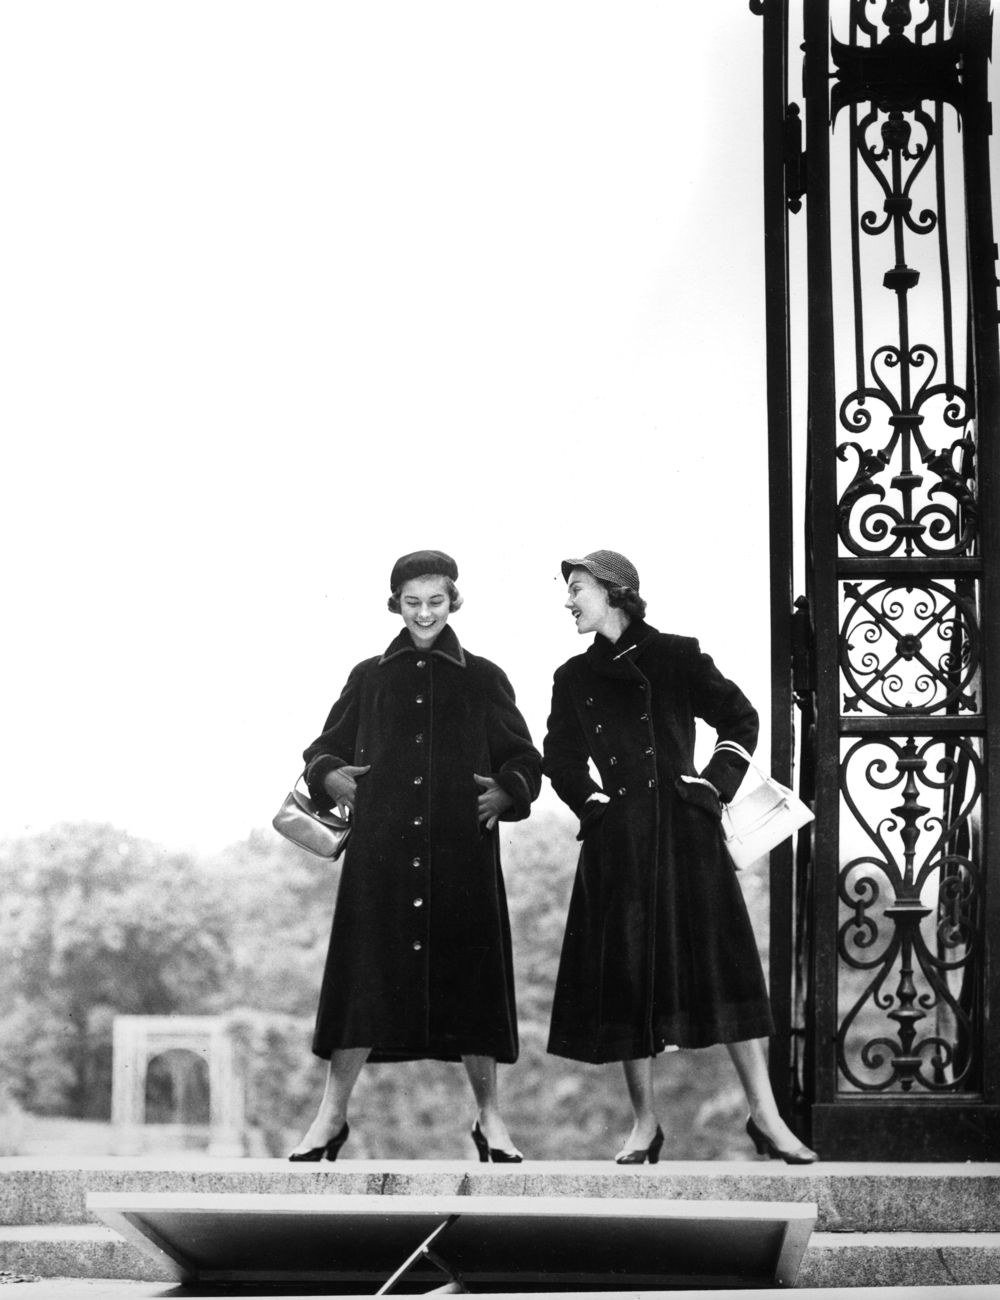 13_1_Two Woman Standing Next to a Gate_Dan Wynn Archive 2.jpeg